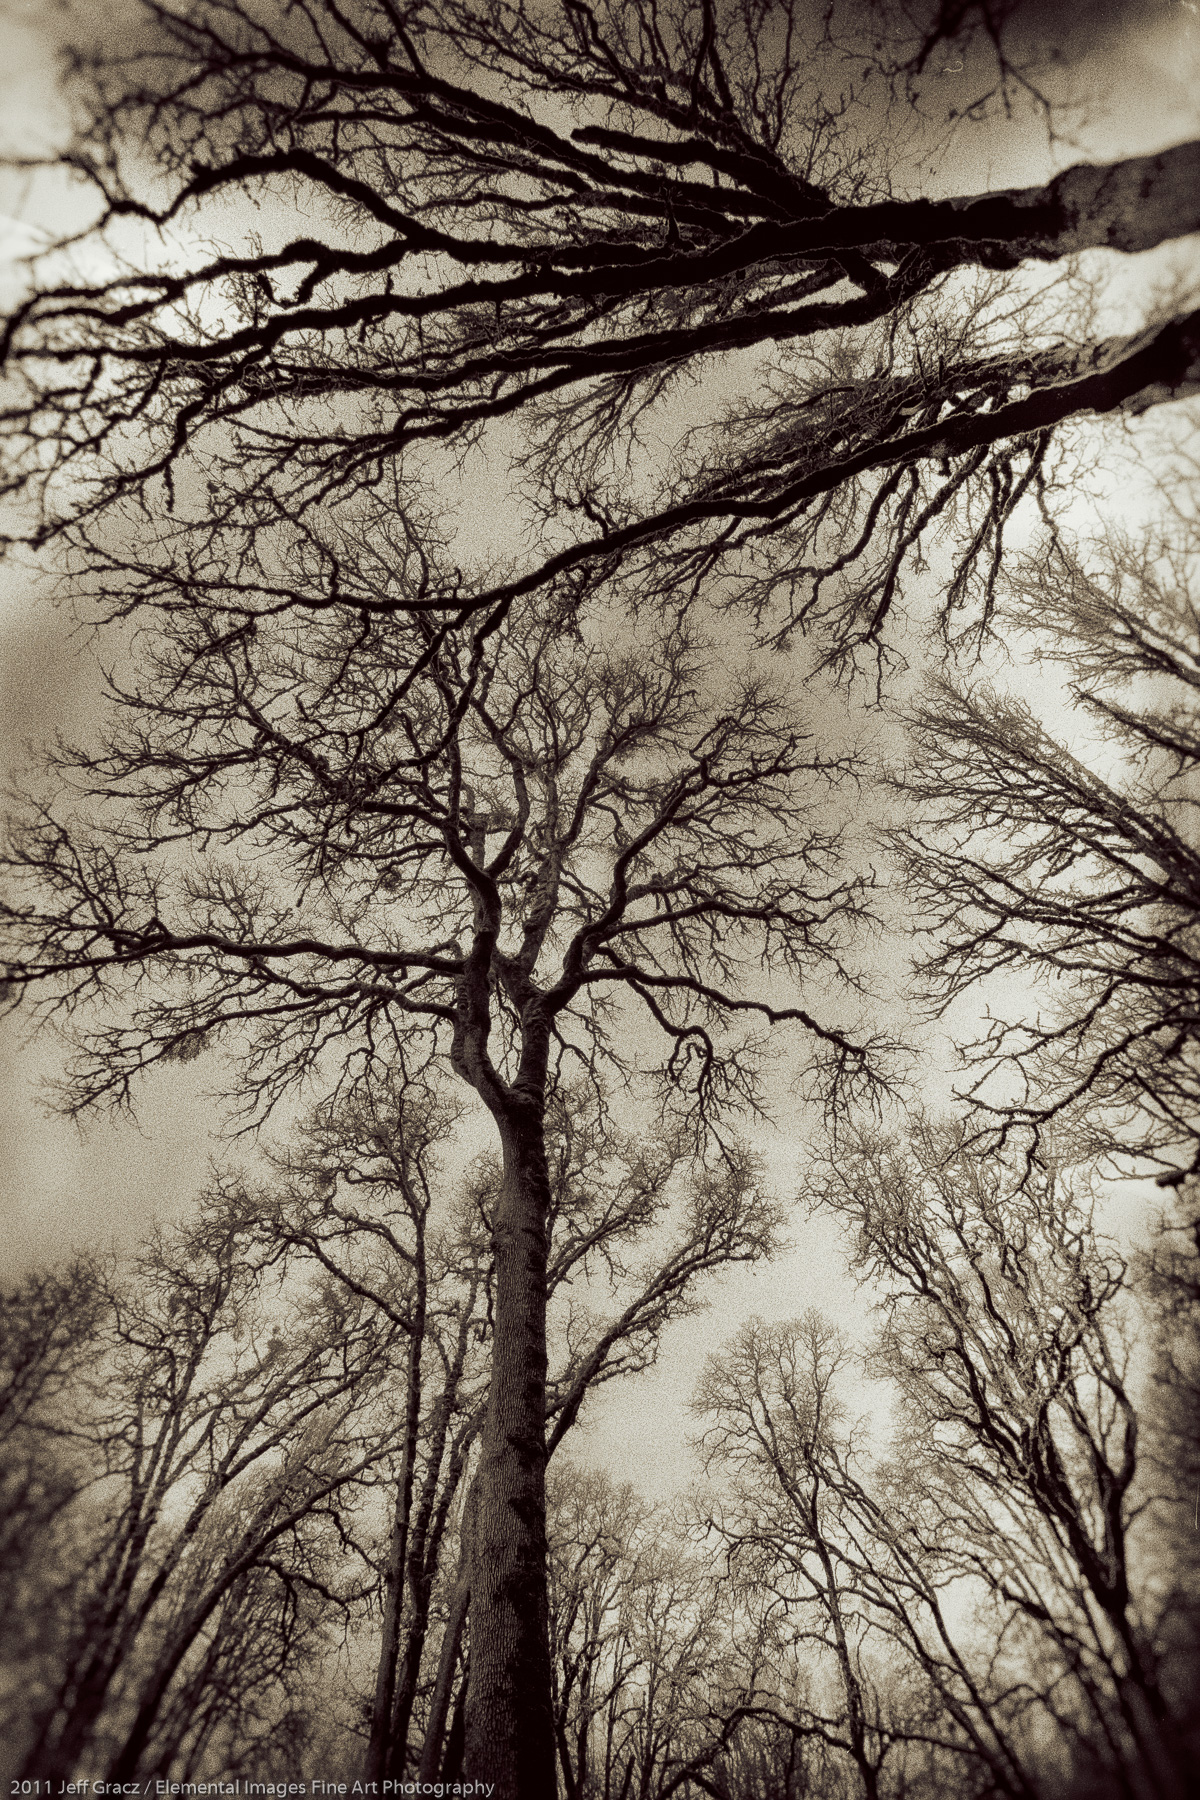 Branches XVIII |  | OR | USA - © 2011 Jeff Gracz / Elemental Images Fine Art Photography - All Rights Reserved Worldwide